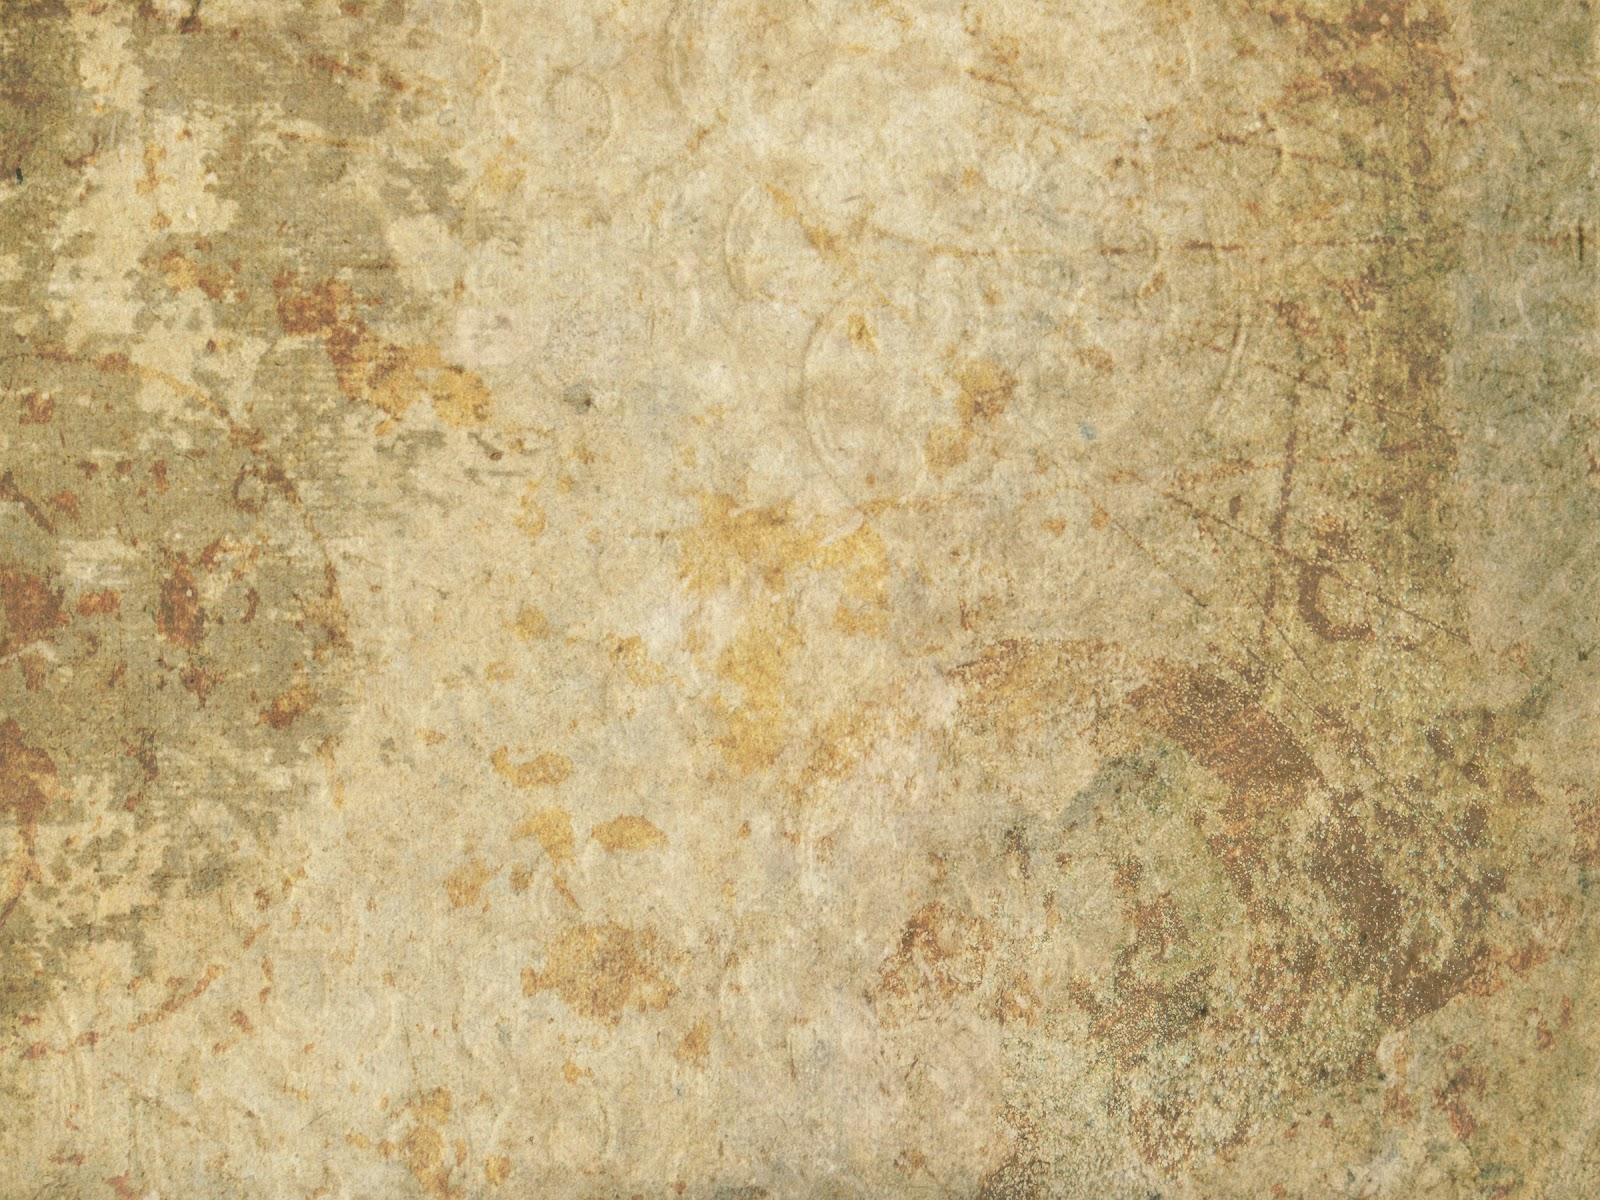 Art Grunge Texture Set contains five new textures, each texture